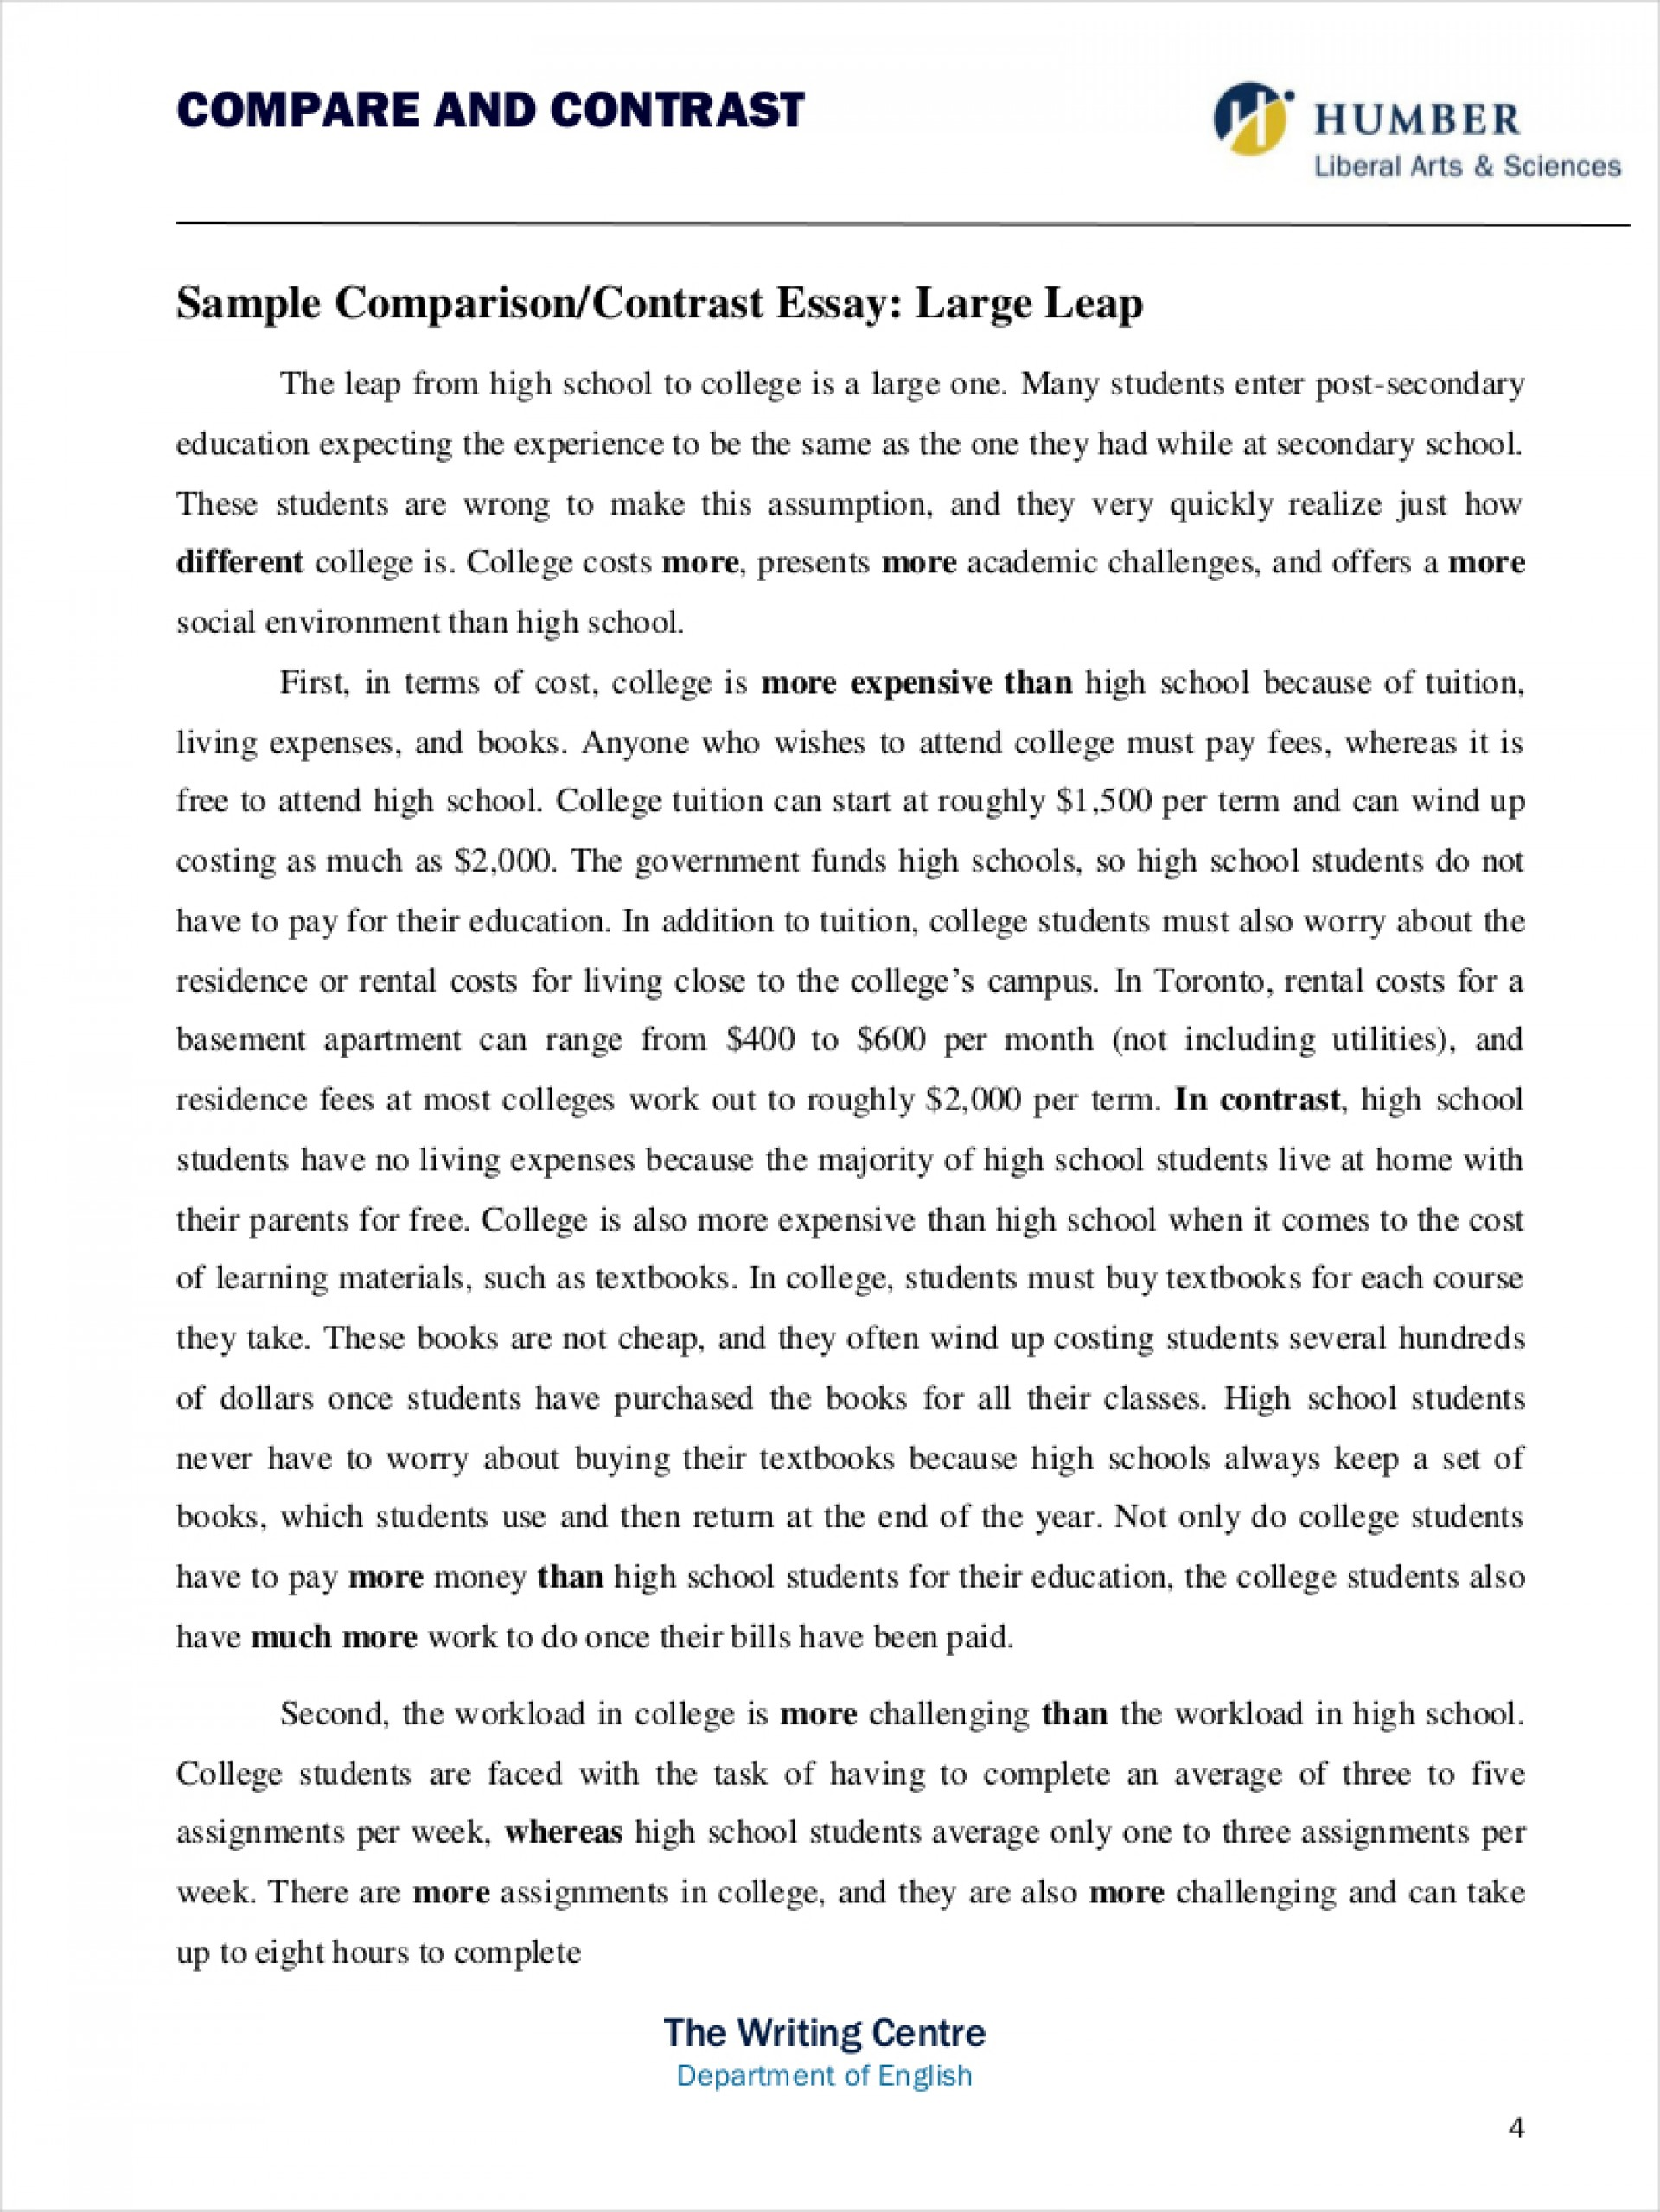 014 How To Write Compare And Contrast Essay Example Comparative Samples Free Pdf Format Download Throughout Examples Comparison Thesis Coles Thecolossus Co Within Ex Outstanding A Outline Ppt Middle School 1920